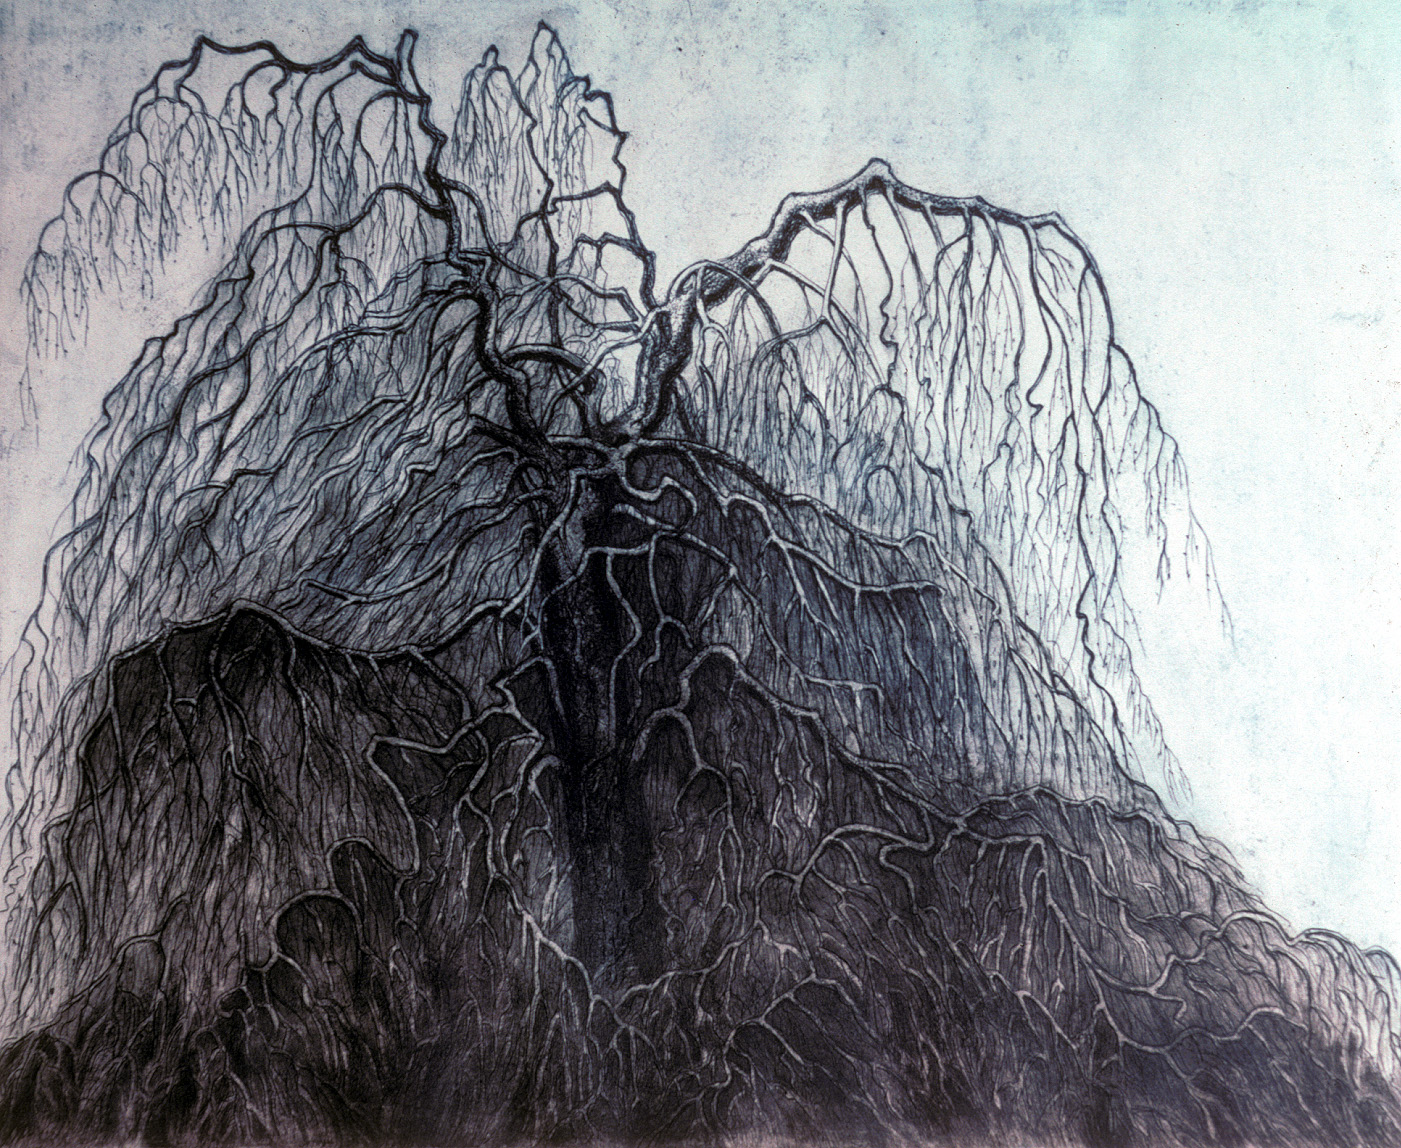 'Weeping Beech' by Morna Rhys